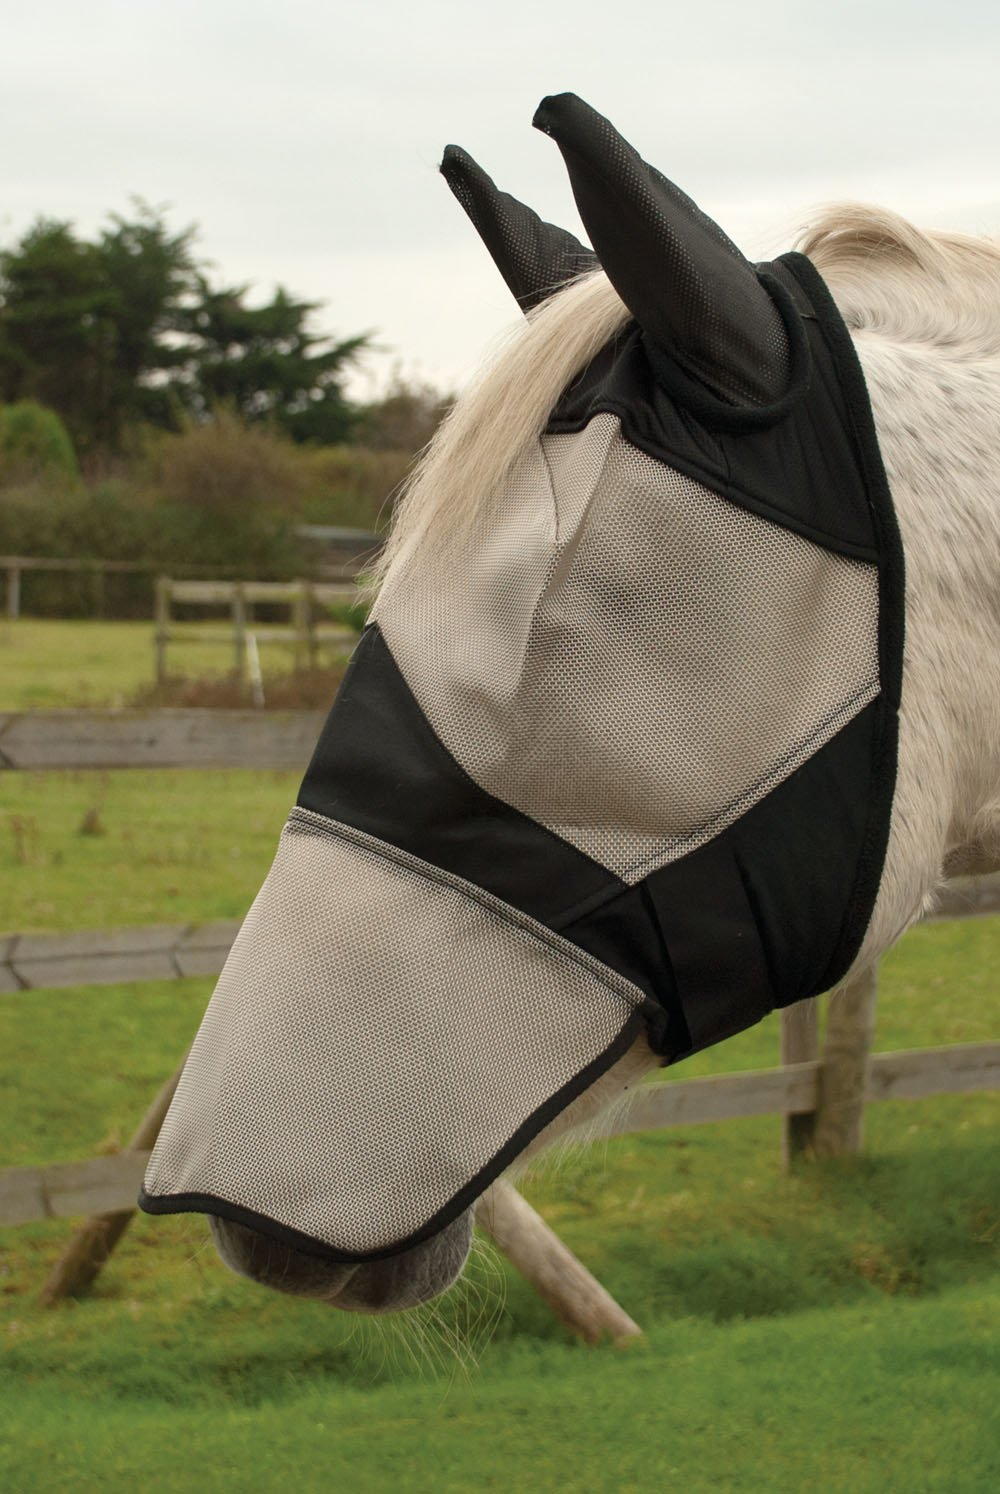 Rhinegold Fly Mask With Ear and Nose Coverage